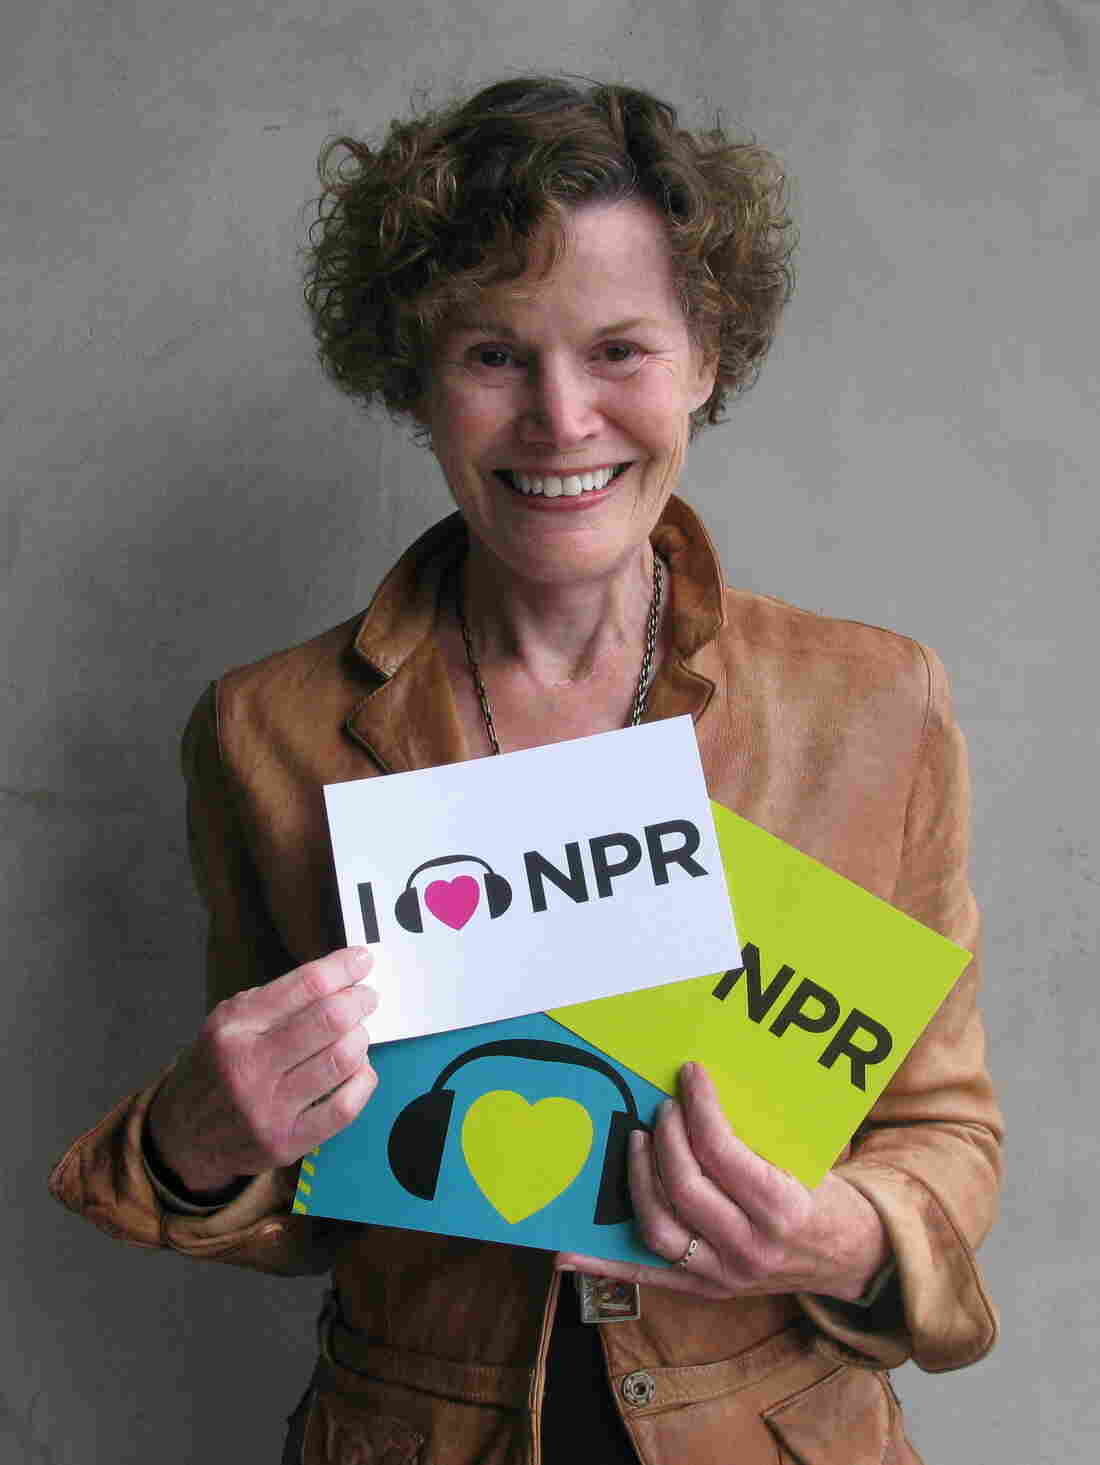 Judy Blume at NPR West.